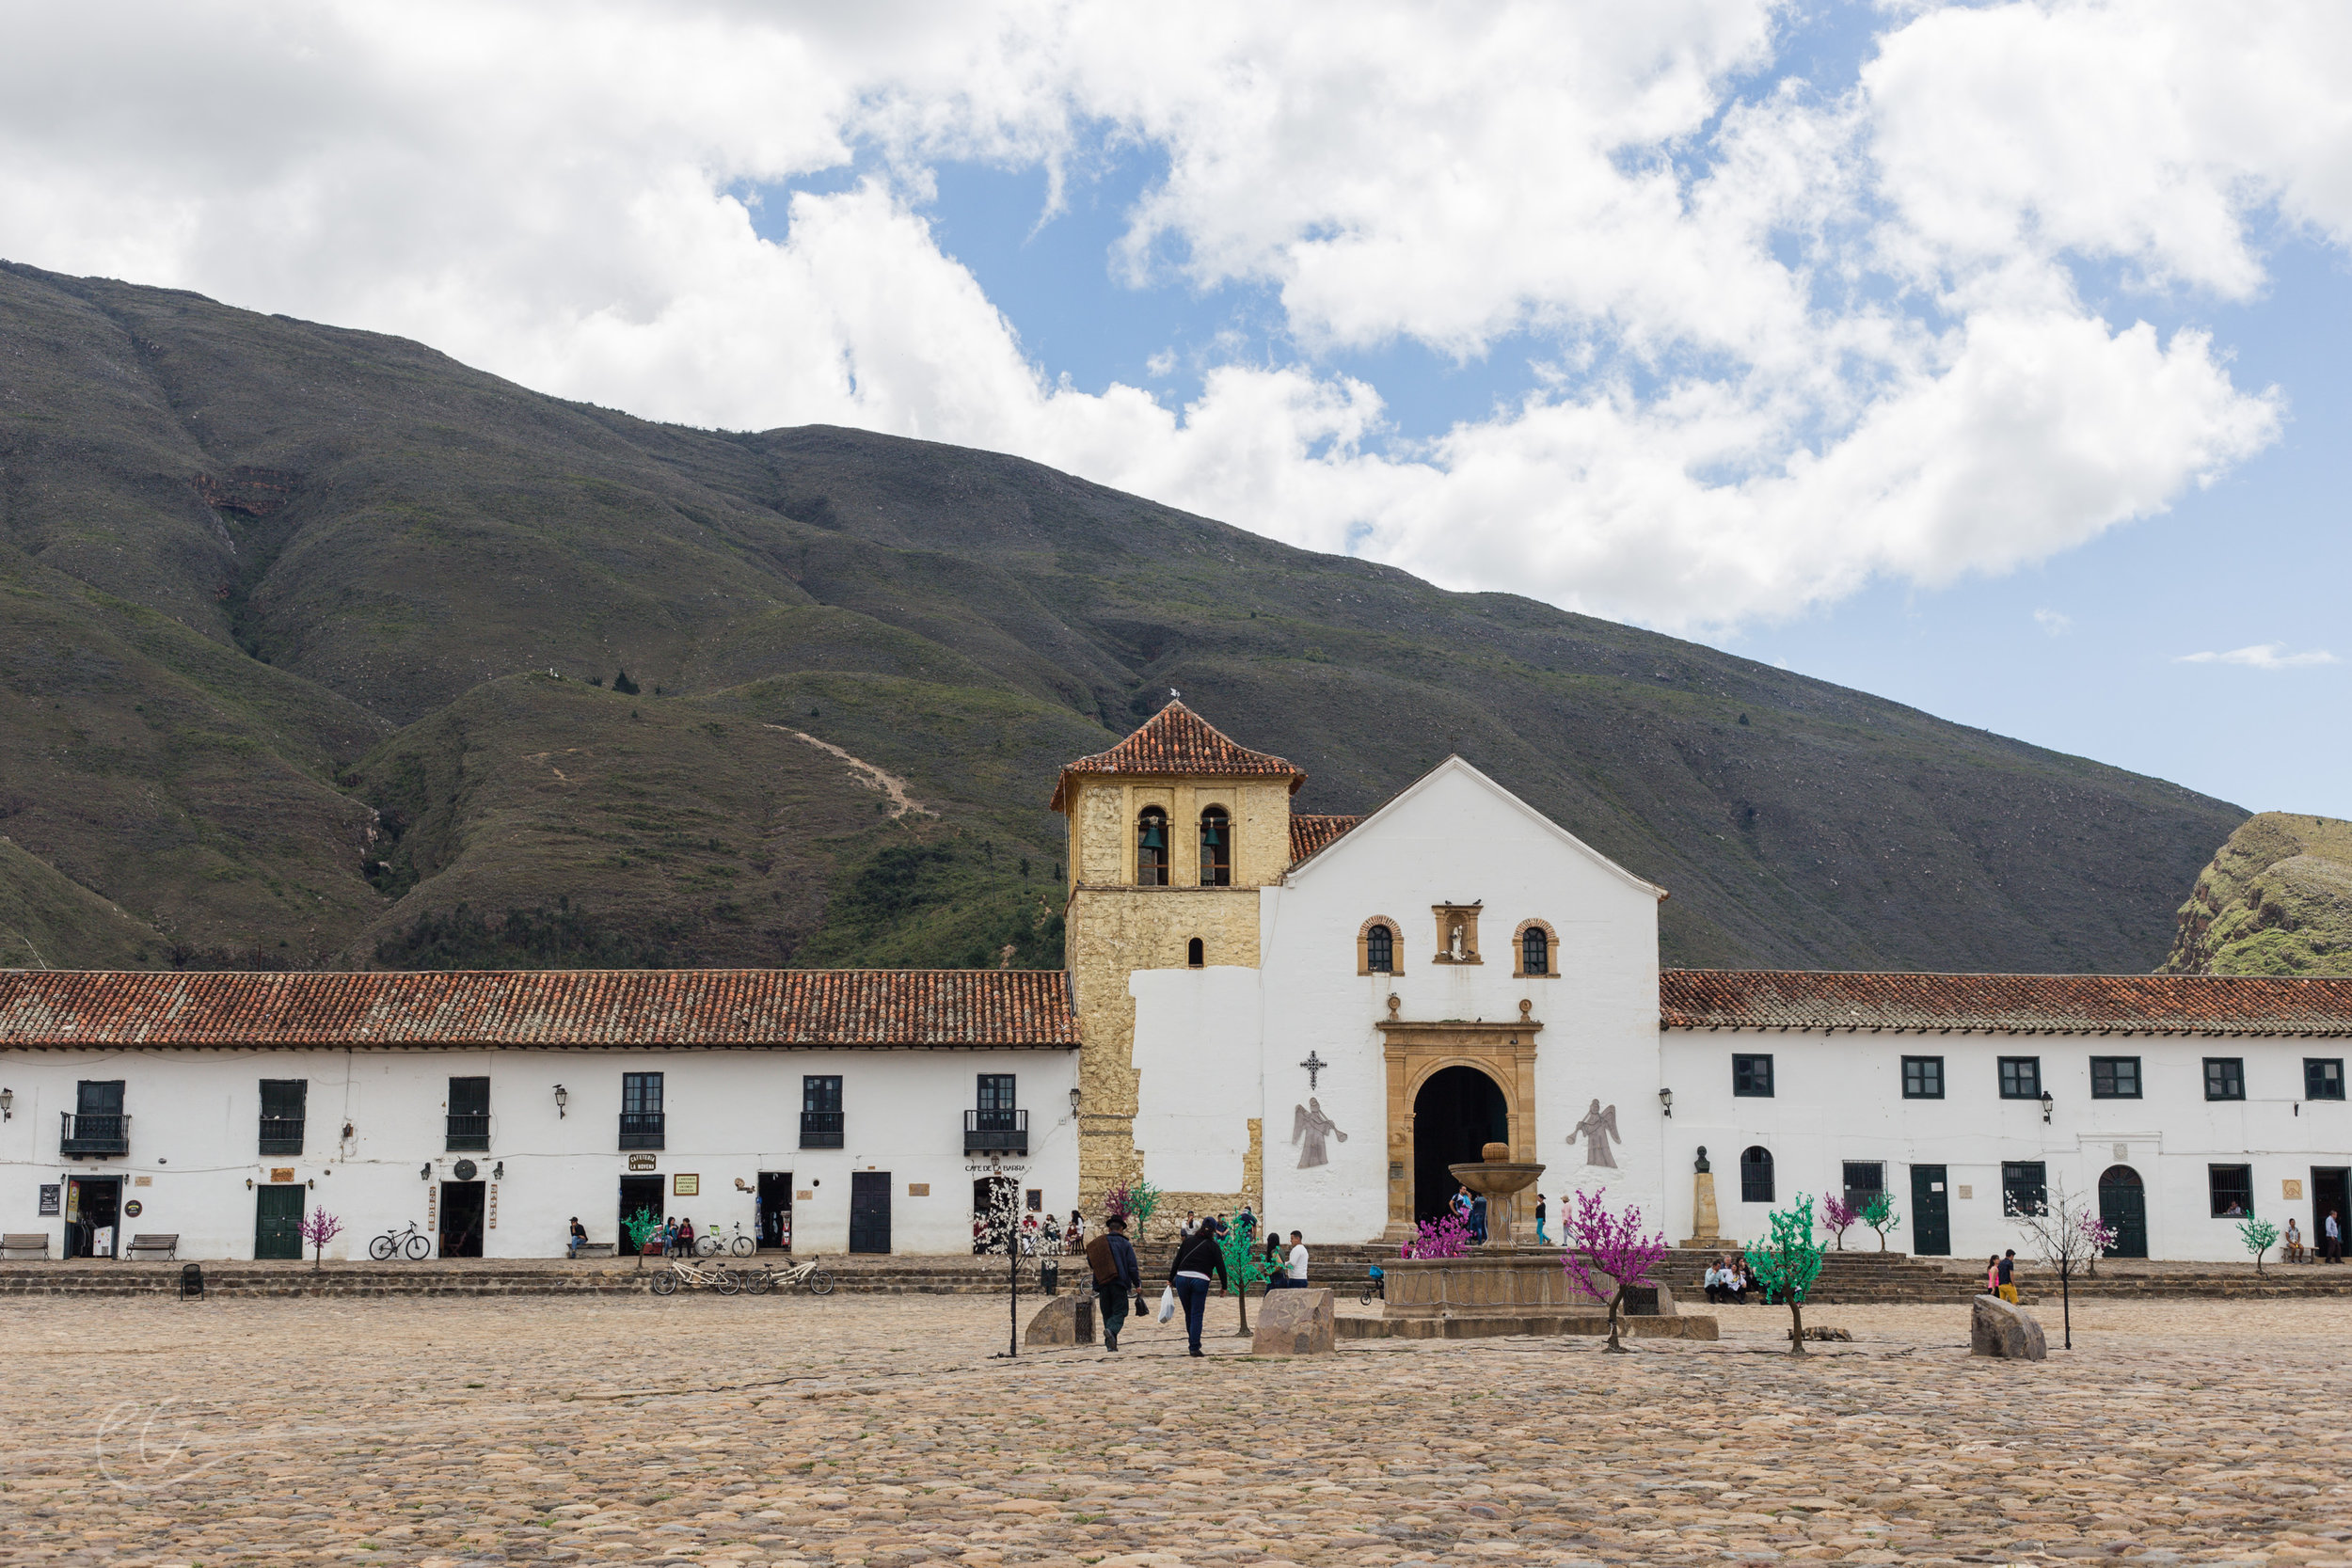 The largest plaza in South America, Villa De Leyva, Colombia